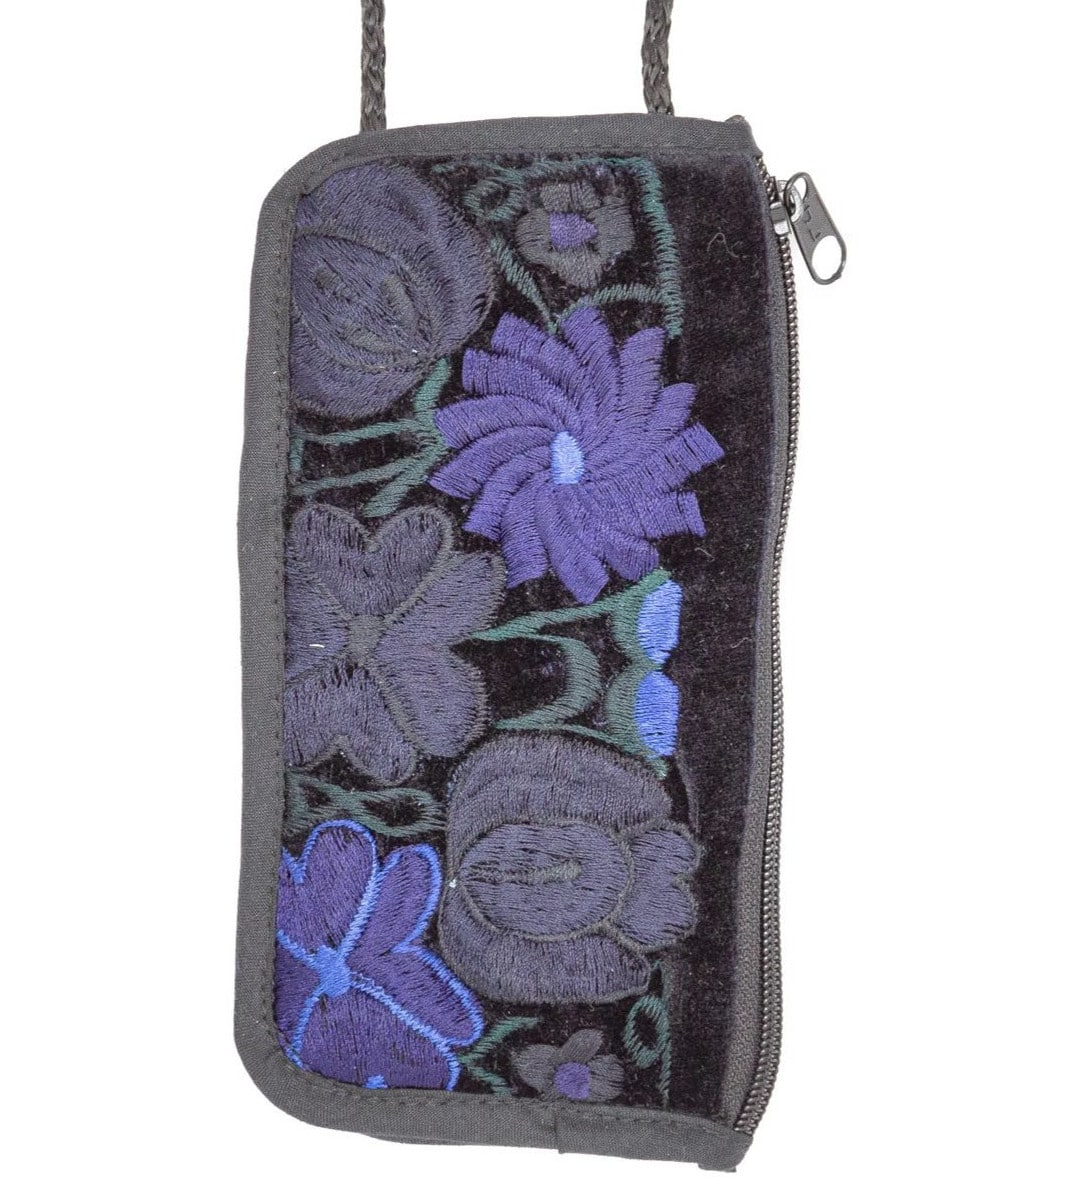 Velvet Embroidered Cell Phone / Eyeglass Case - A Variety of Colors